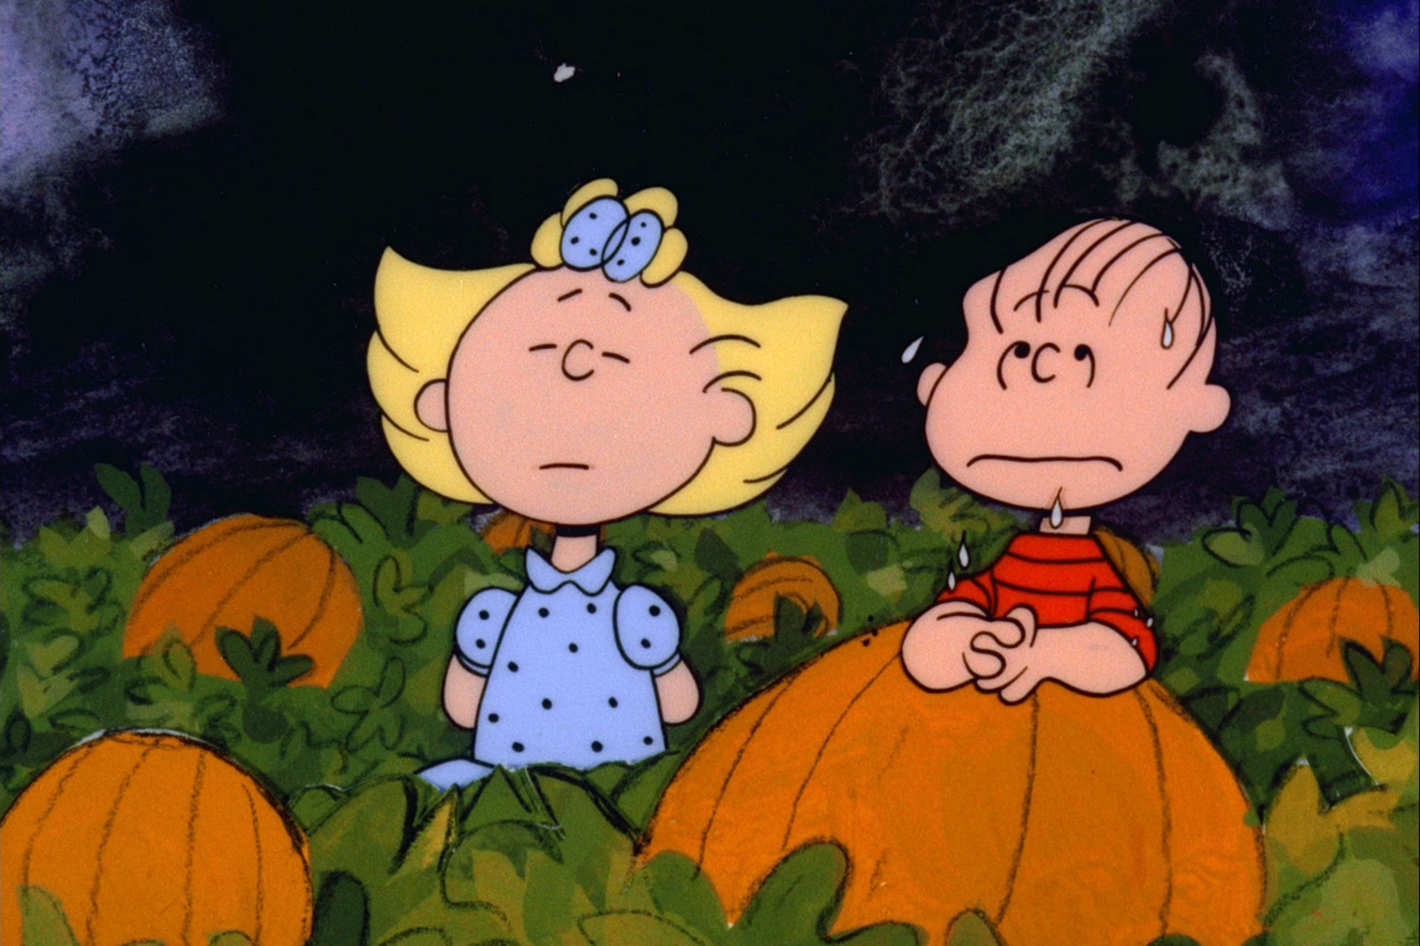 an ode to it's the great pumpkin, charlie brown, the cartoon where